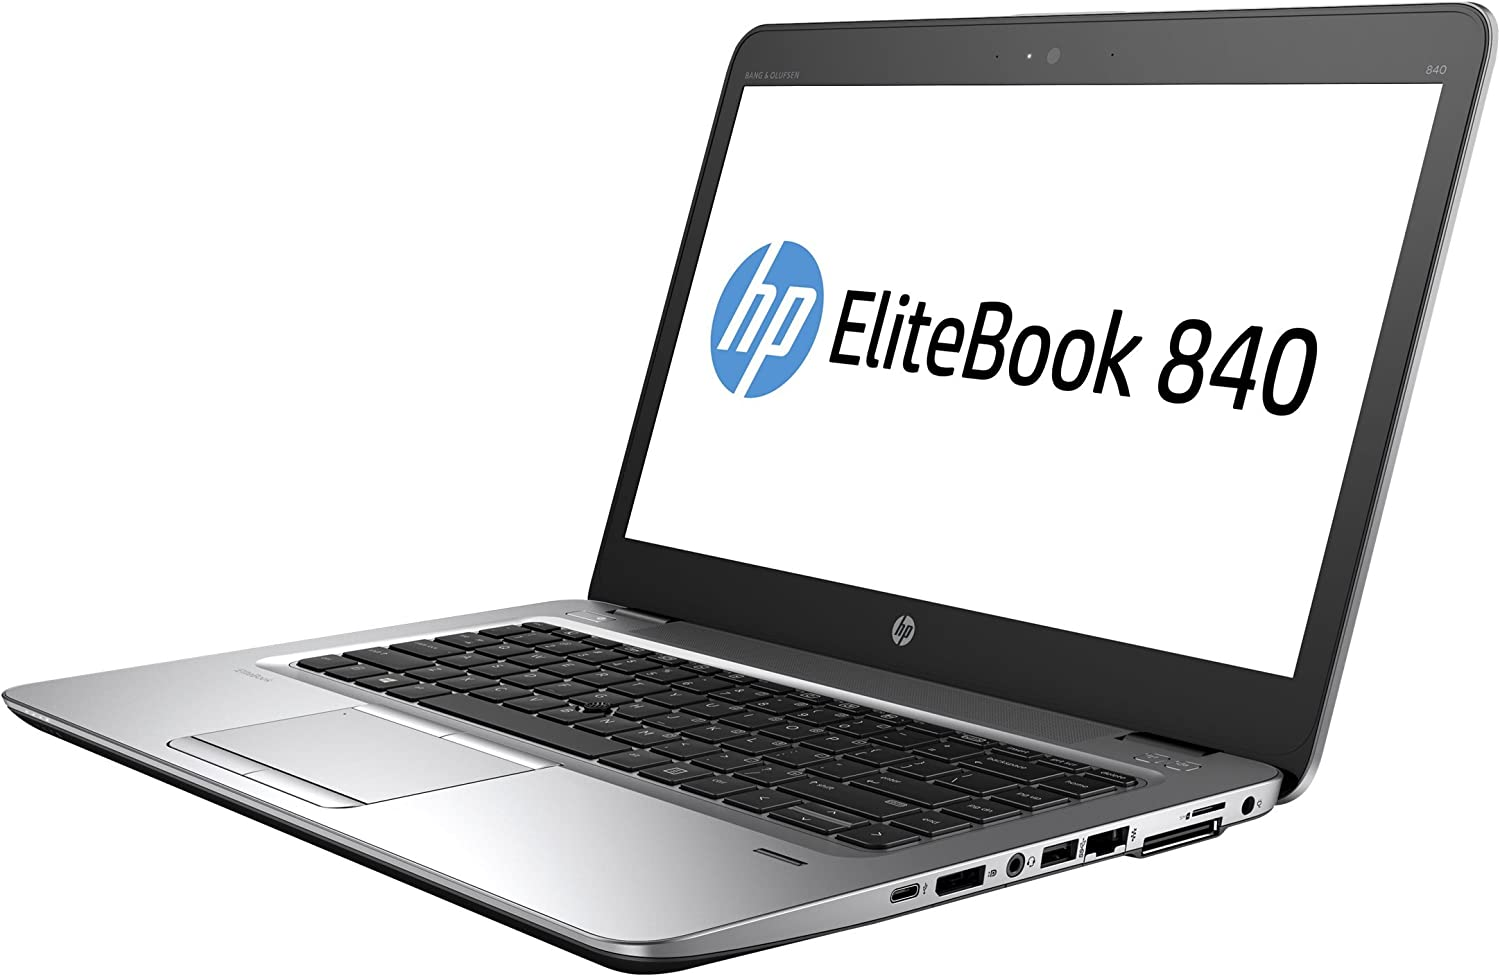 "HP Elite Book Business 840 G3 T6F45UT#ABA Laptop (Windows 7 Pro, Intel Core i5-6200U, 14"" OLED Screen, Storage: 128 GB, RAM: 8 GB) Black/Grey"